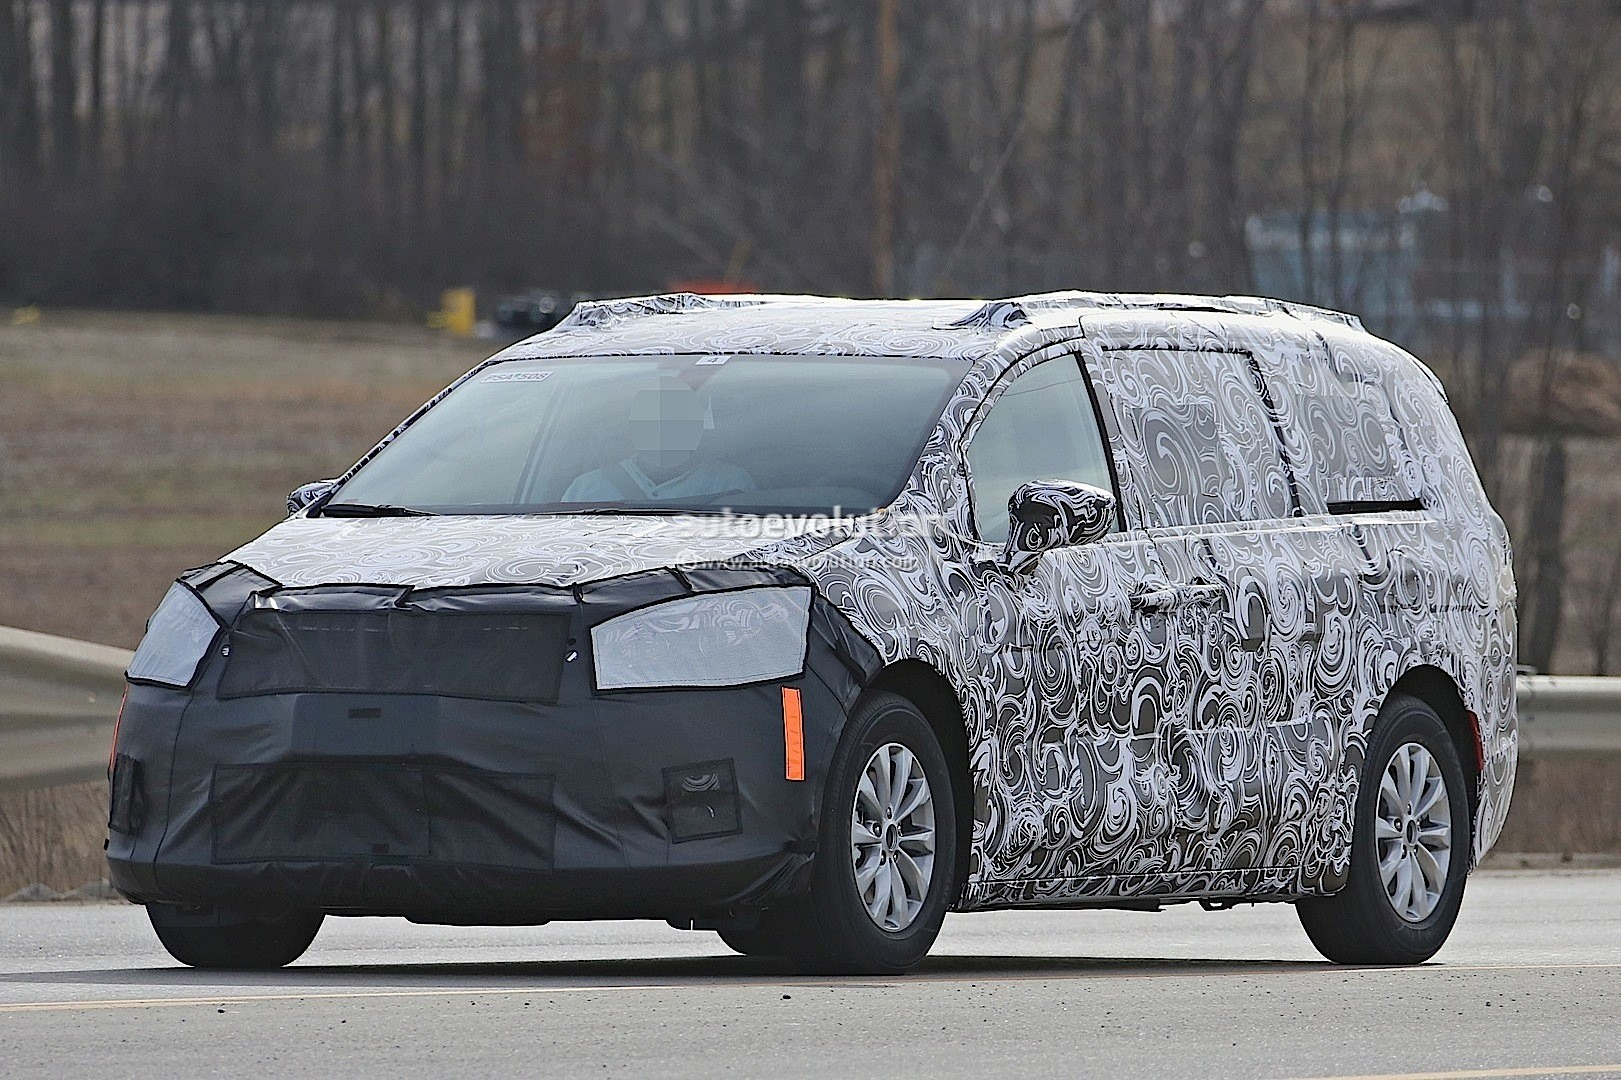 2017 Chrysler Town & Country Silhouette Revealed in Latest Spyshots - autoevolution